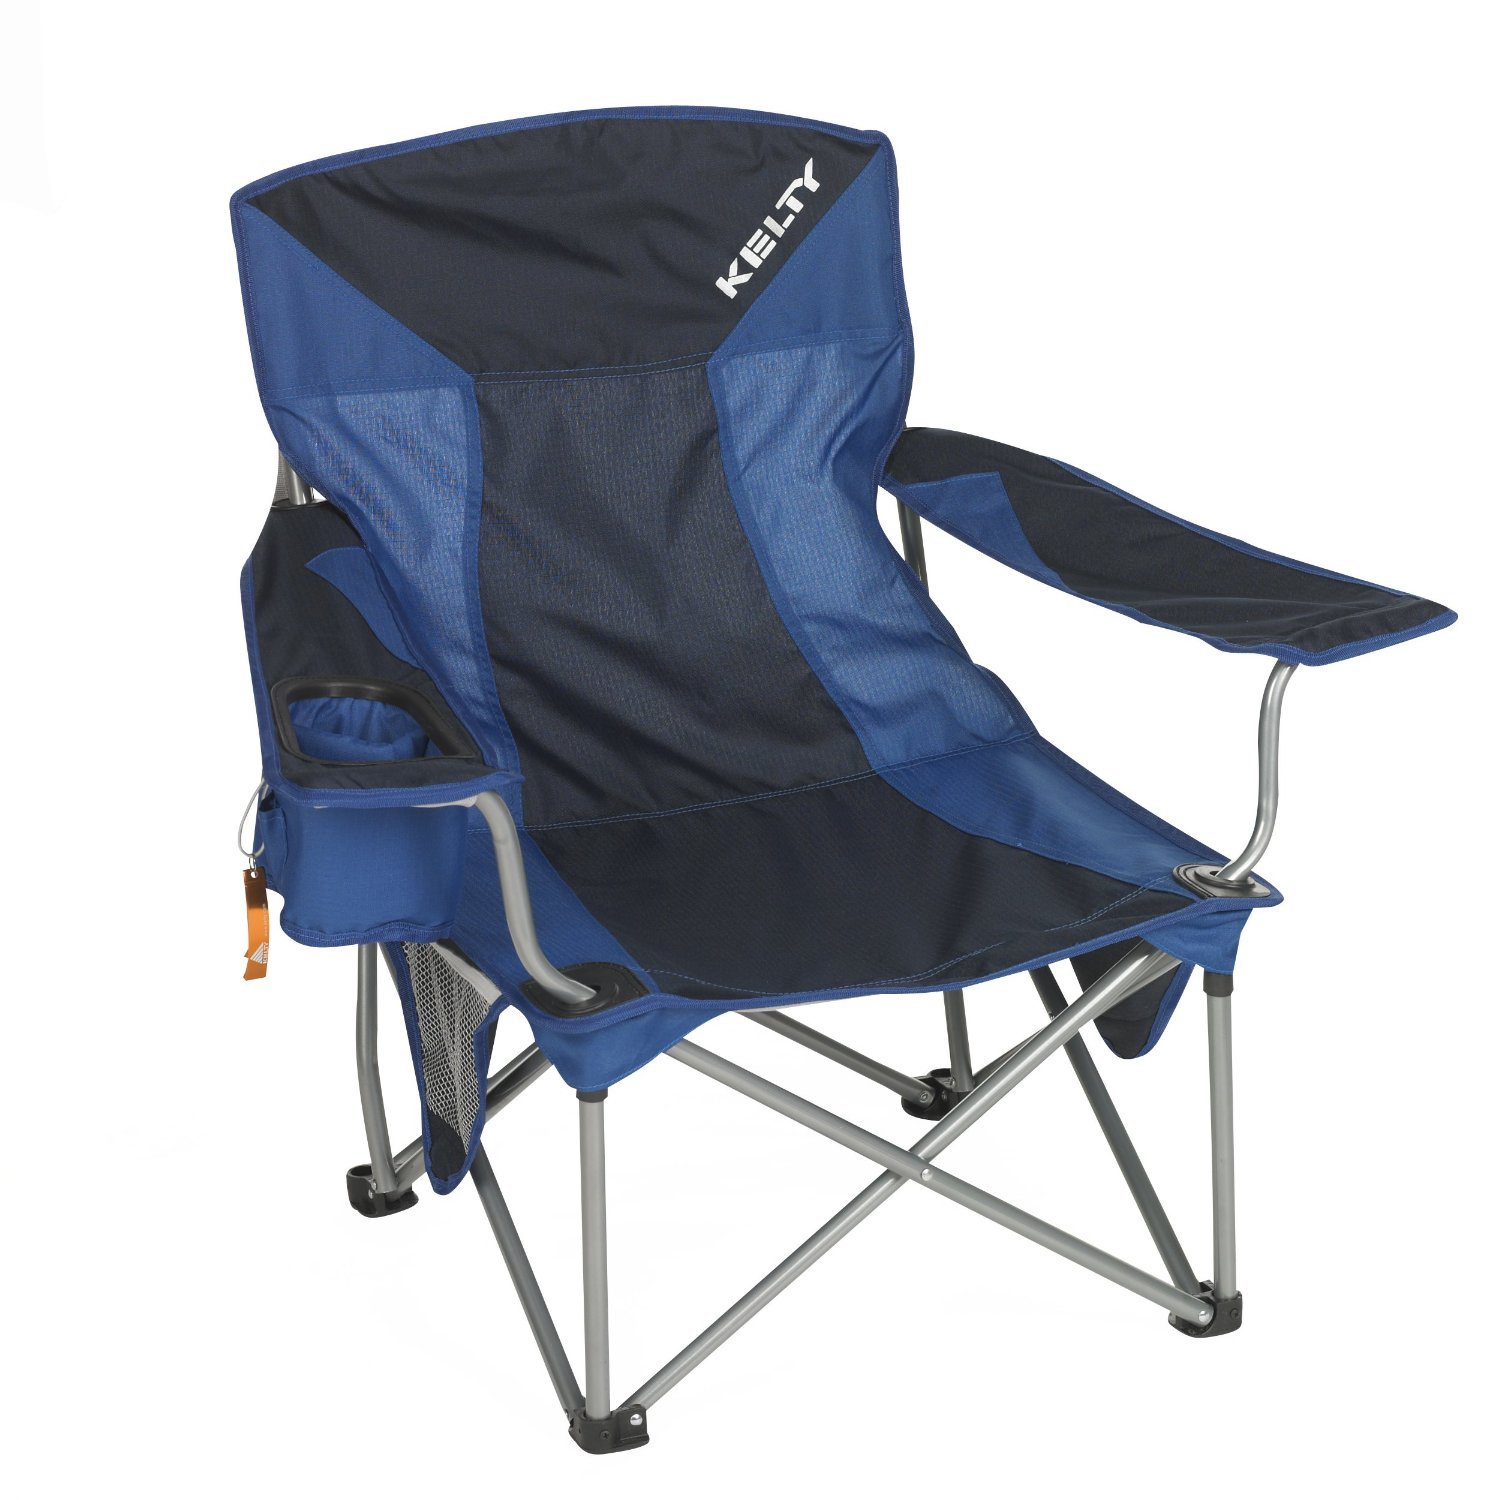 12 people when using folding chairs 12 people should fit comfortably - 12 People When Using Folding Chairs 12 People Should Fit Comfortably Using Folding Chairs 12